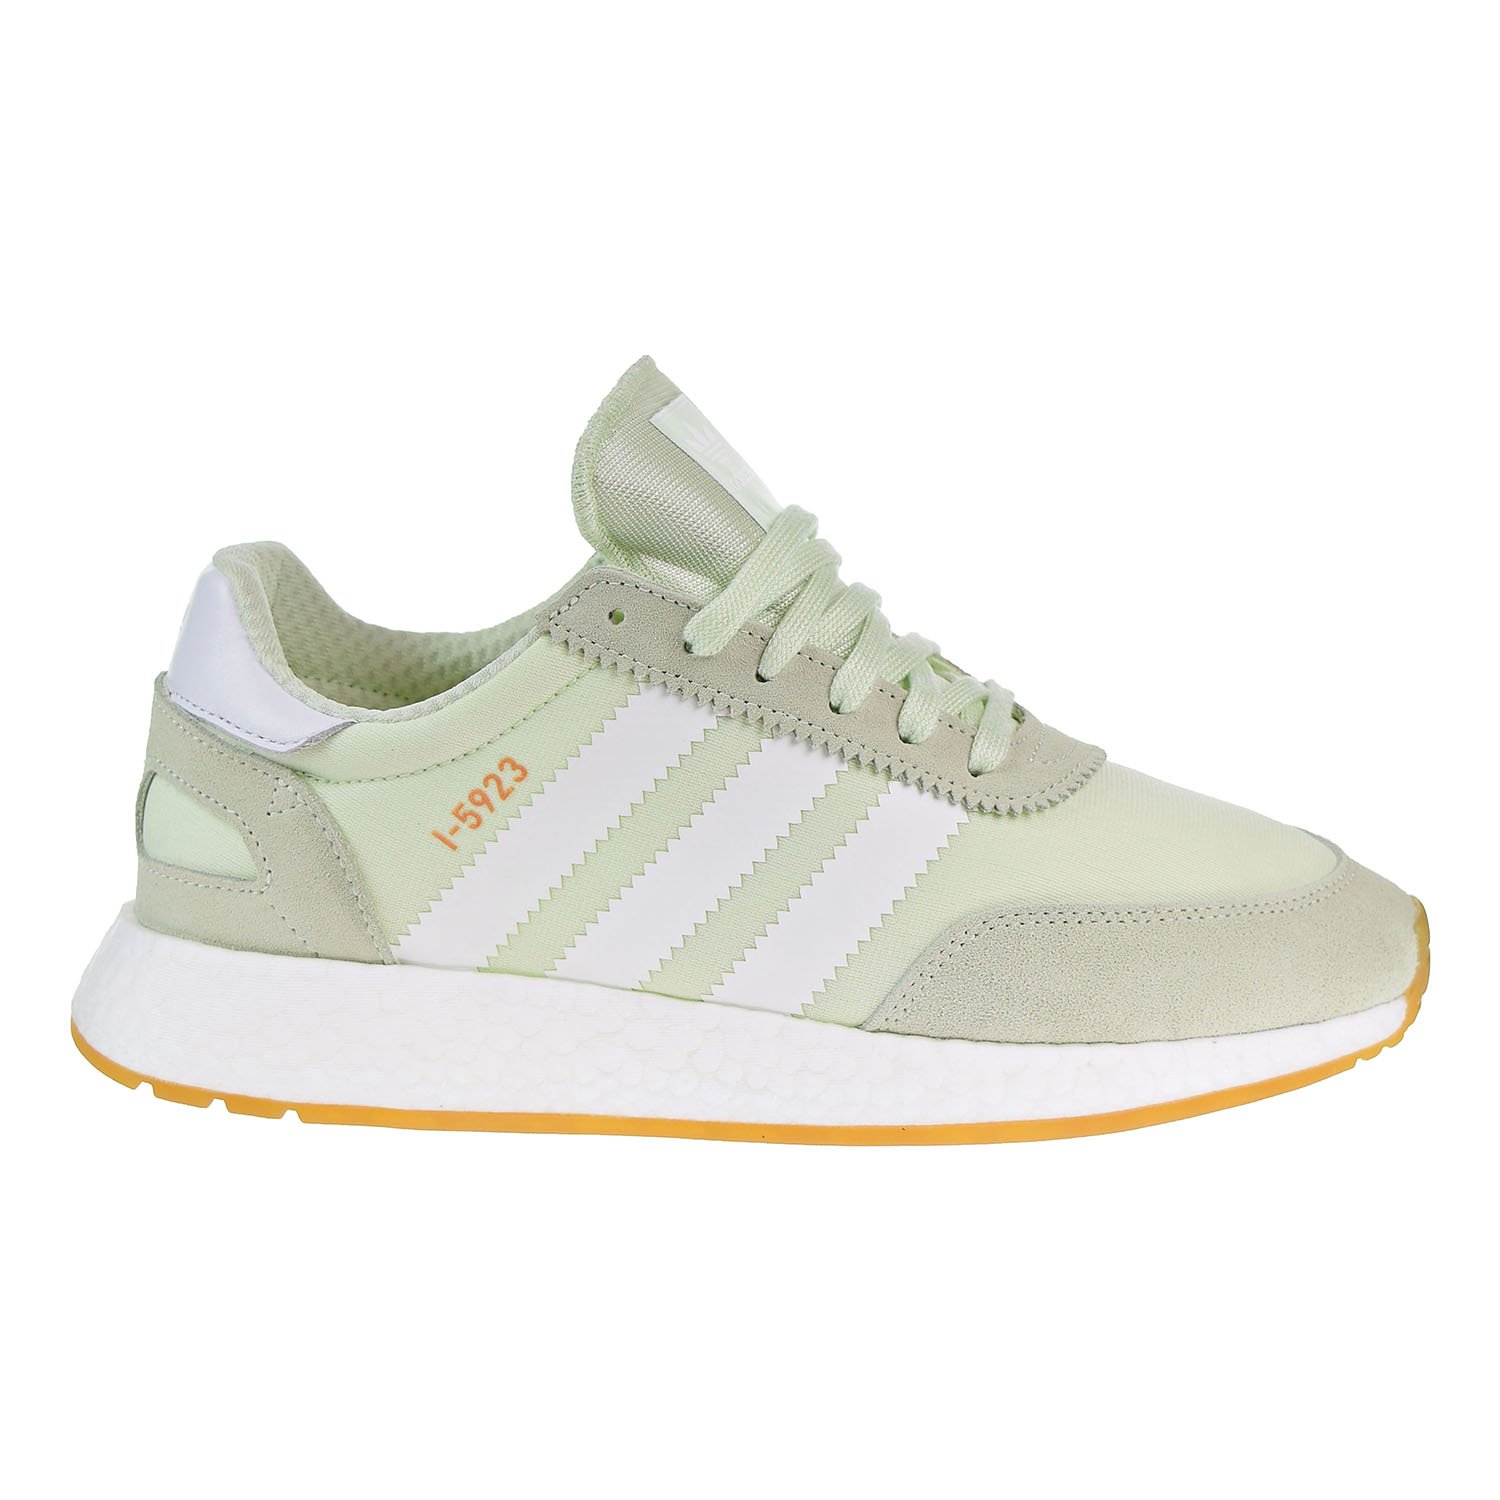 40a1e0dadf24d8 100% Authentic. adidas Iniki 11 Women s Off-White Sneakers B079NSR3YR 11  Iniki B(M) US ...